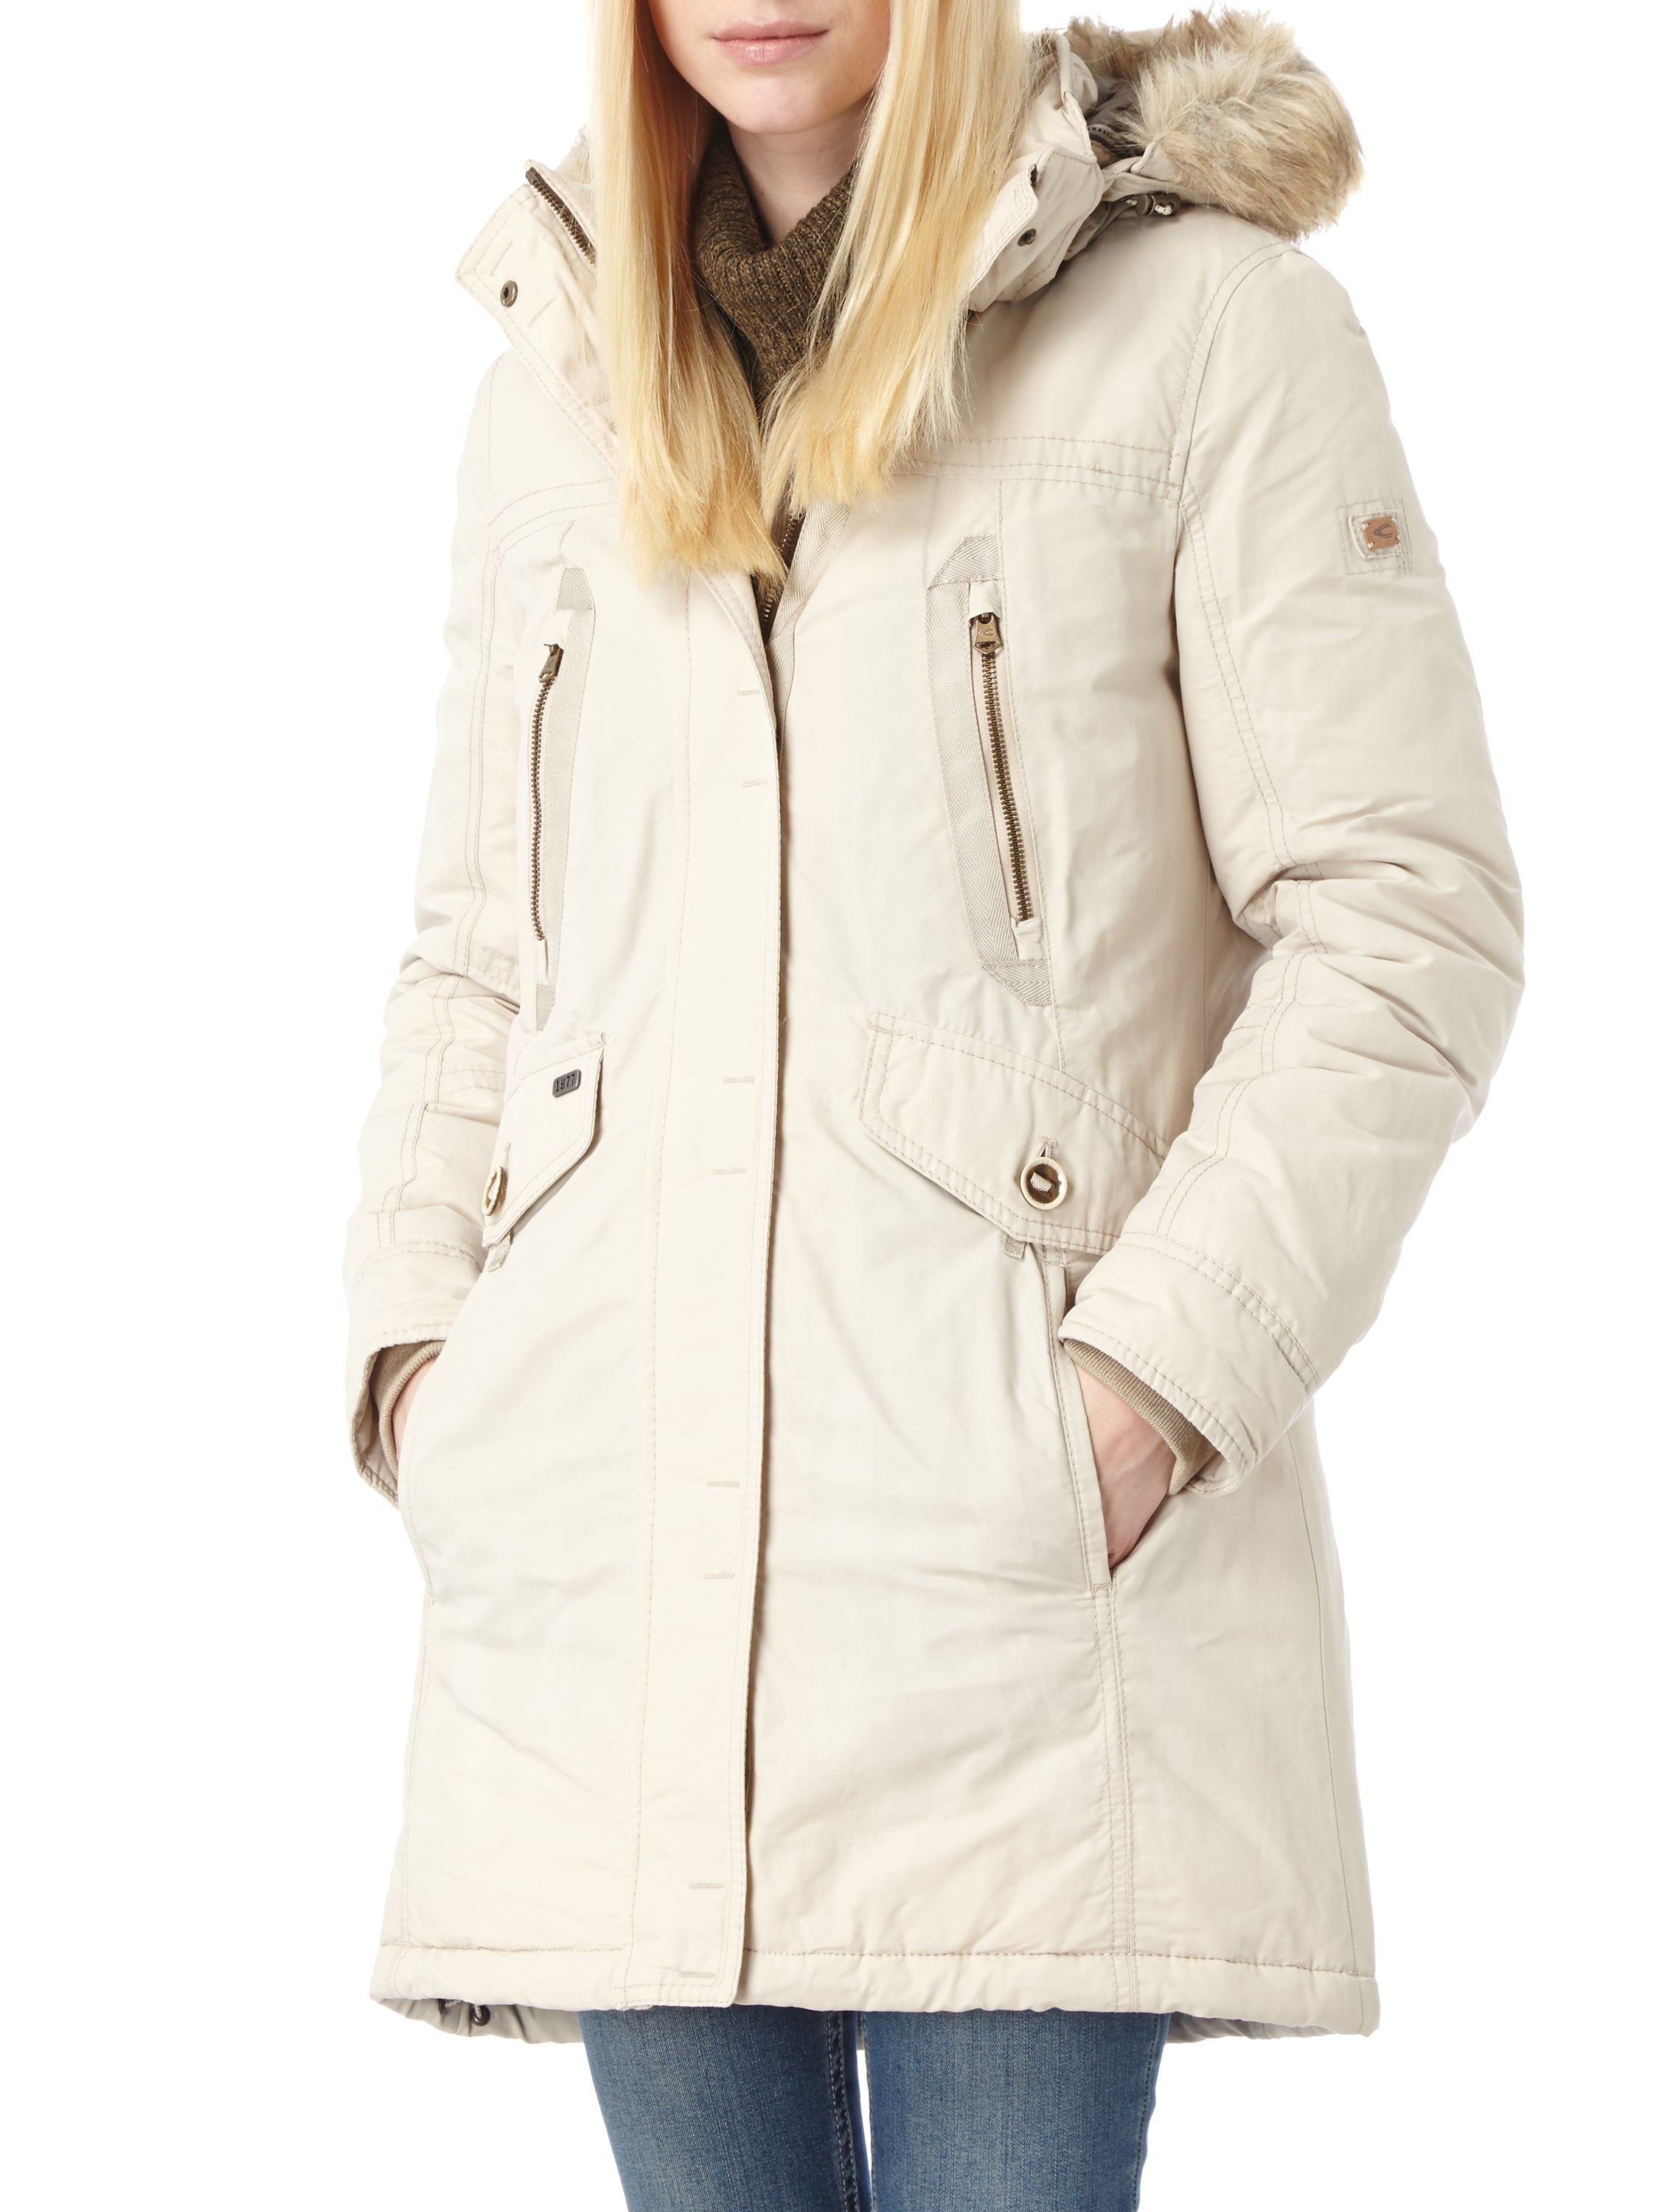 camel active parka mit abnehmbarer kapuze und webpelz in wei online kaufen 9515808 p c. Black Bedroom Furniture Sets. Home Design Ideas